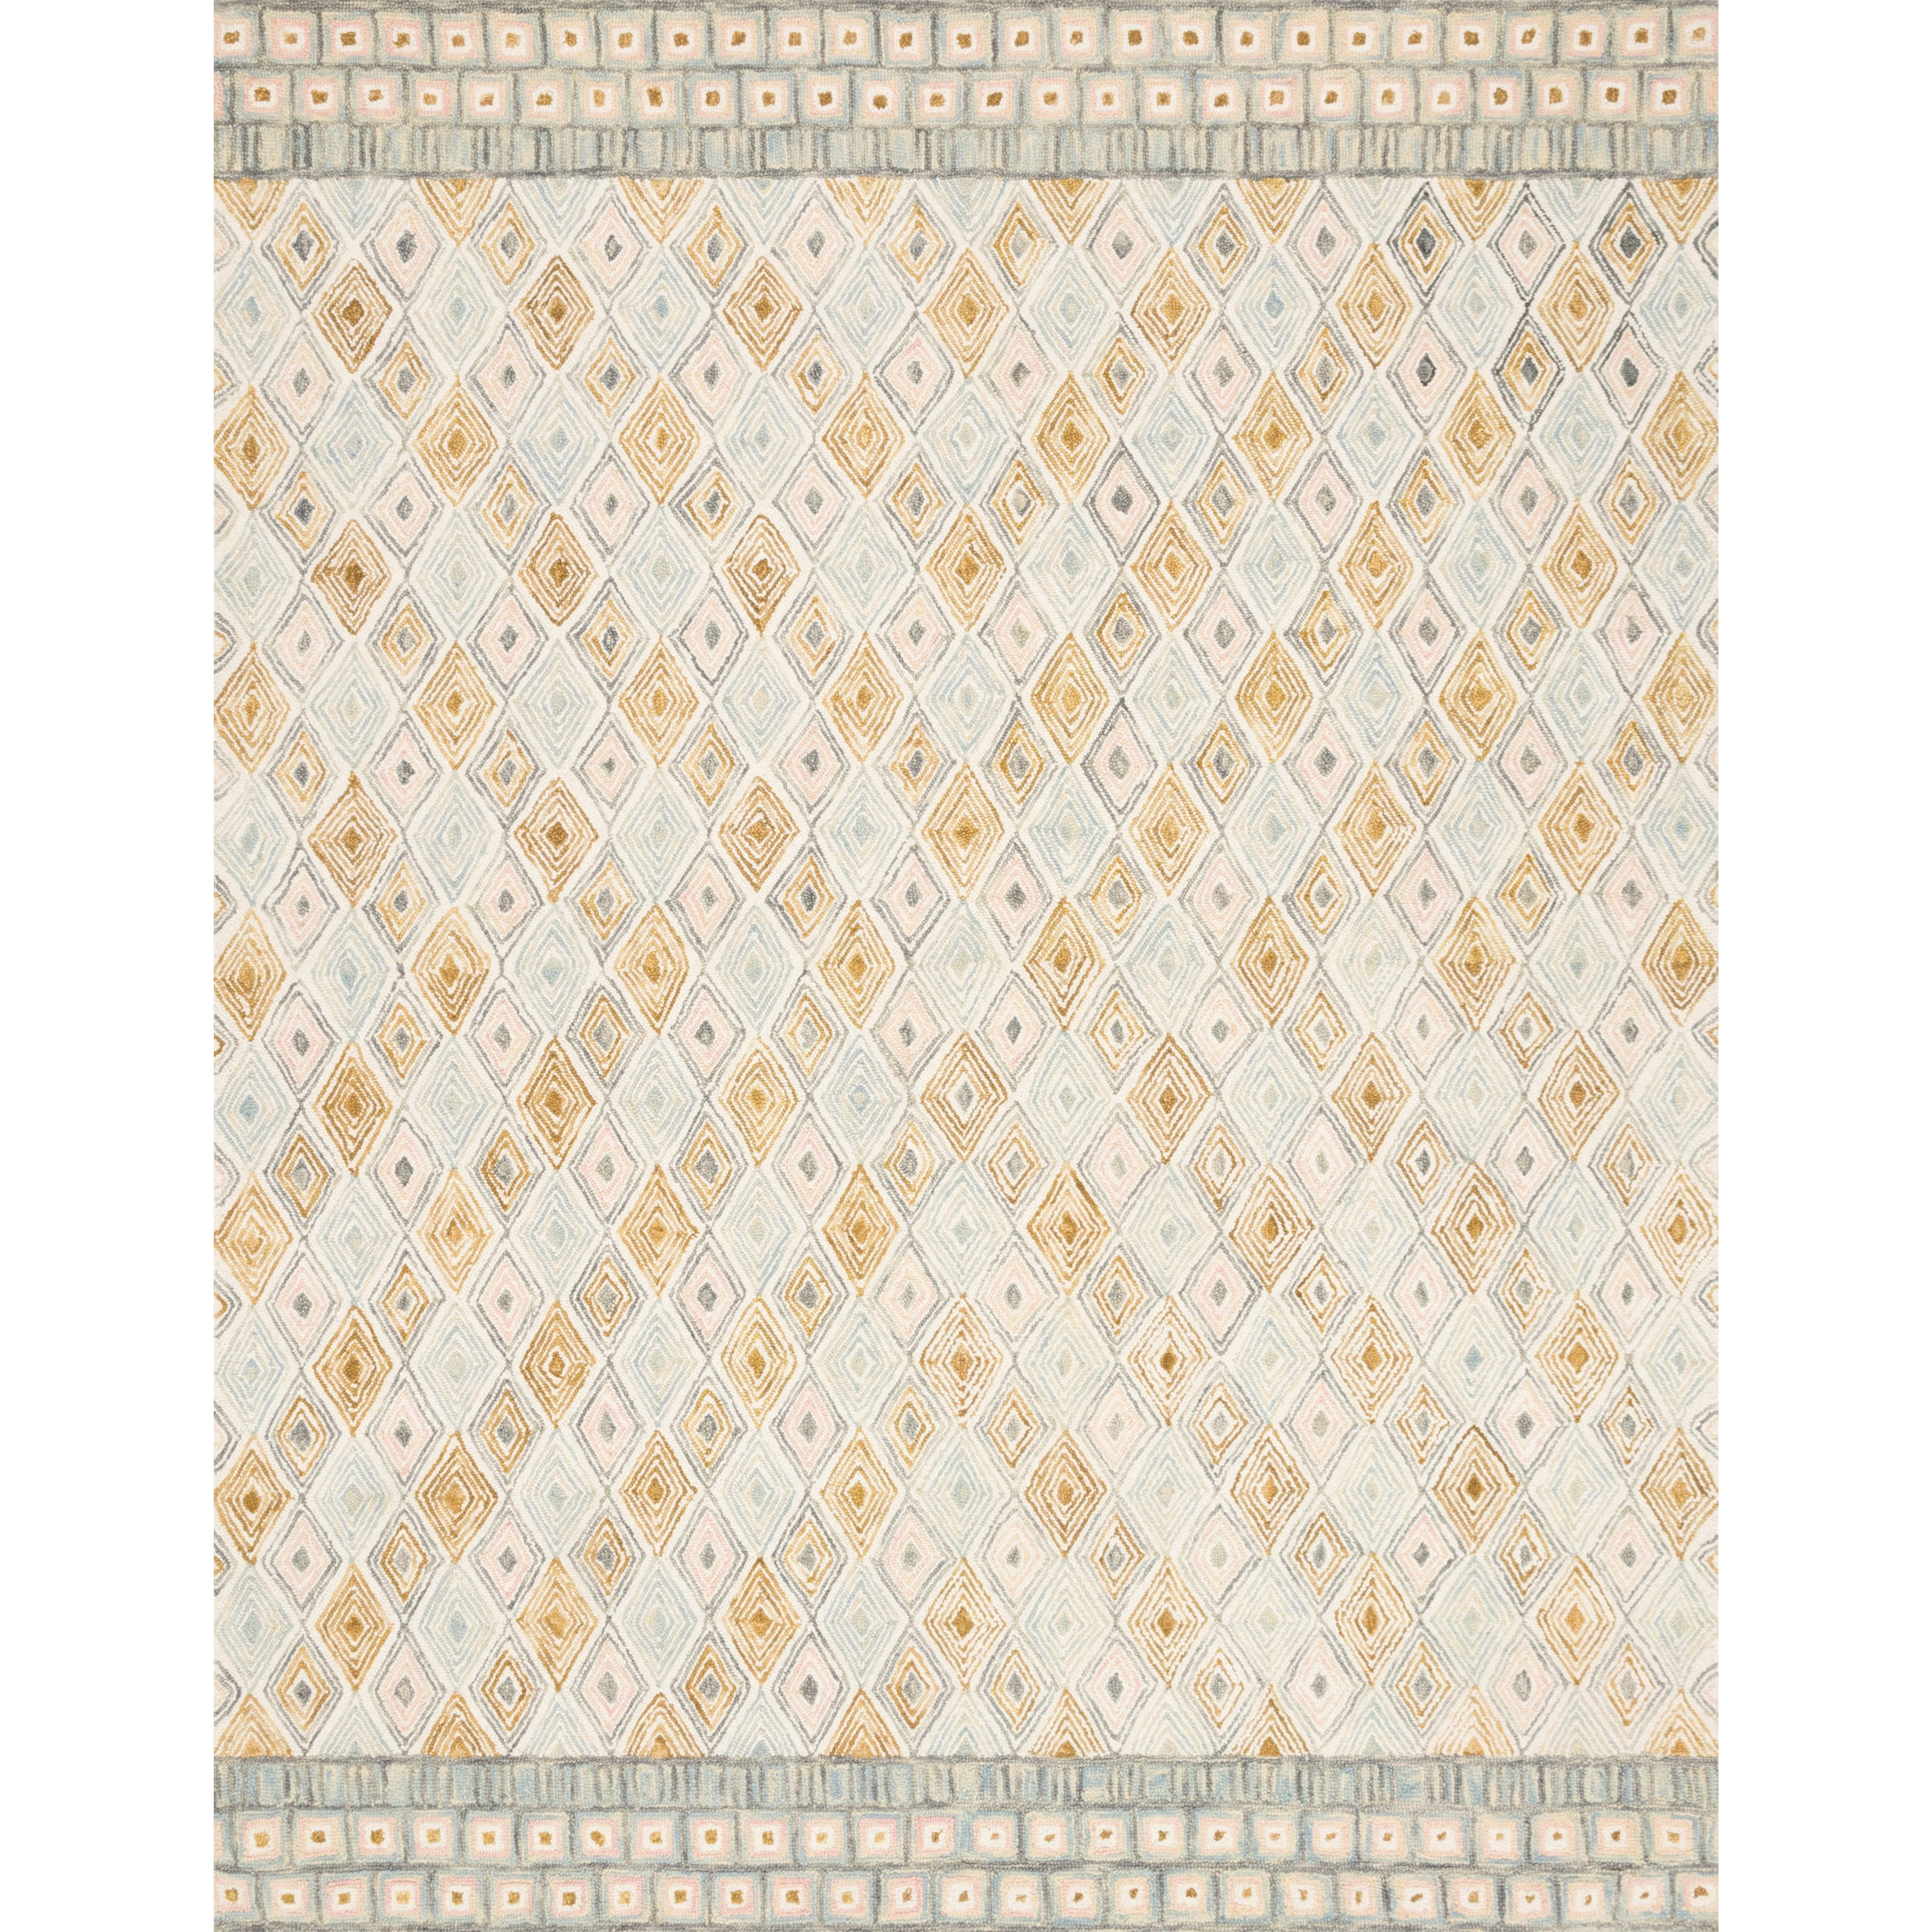 "Priti 3'6"" x 5'6"" Mist / Gold Rug by Loloi Rugs at Virginia Furniture Market"